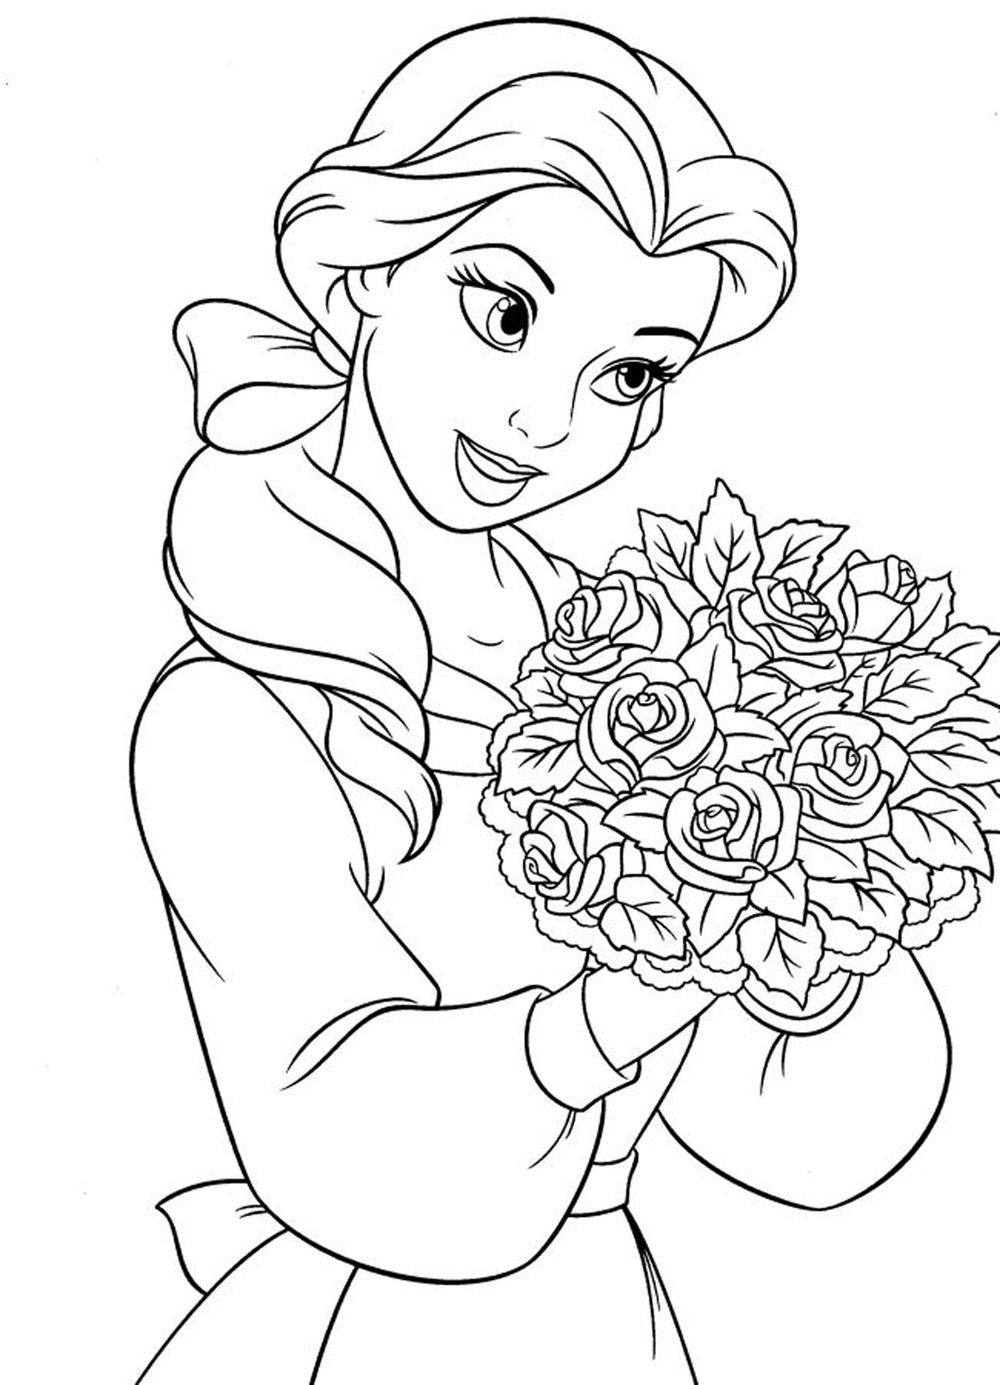 Disney Princess Coloring Book | DISNEY COLORING PAGES | Pinterest ...